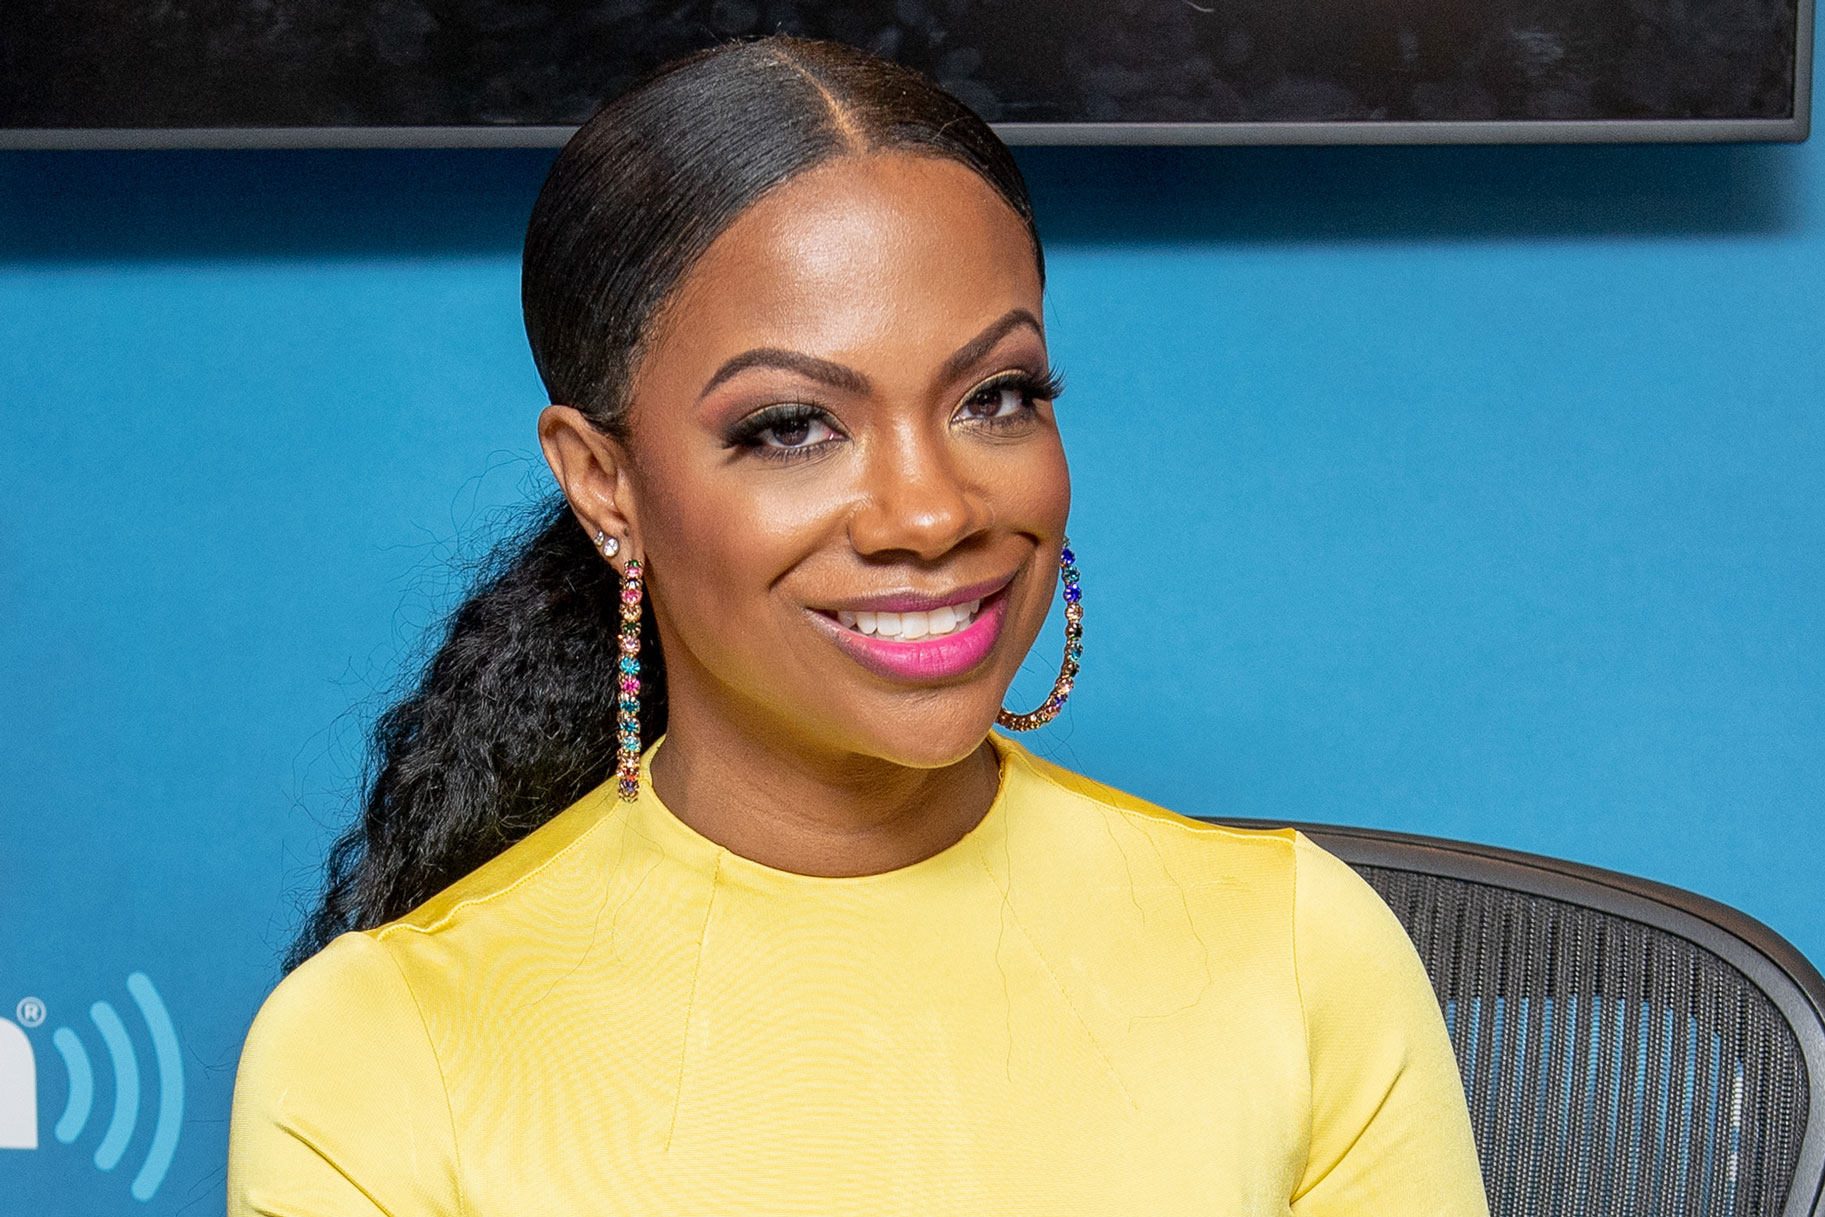 Kandi Burruss Gushes Over Her Pal, Keke With Her Latest Posts - She Invited Her On Her Show Called 'Speak On It'